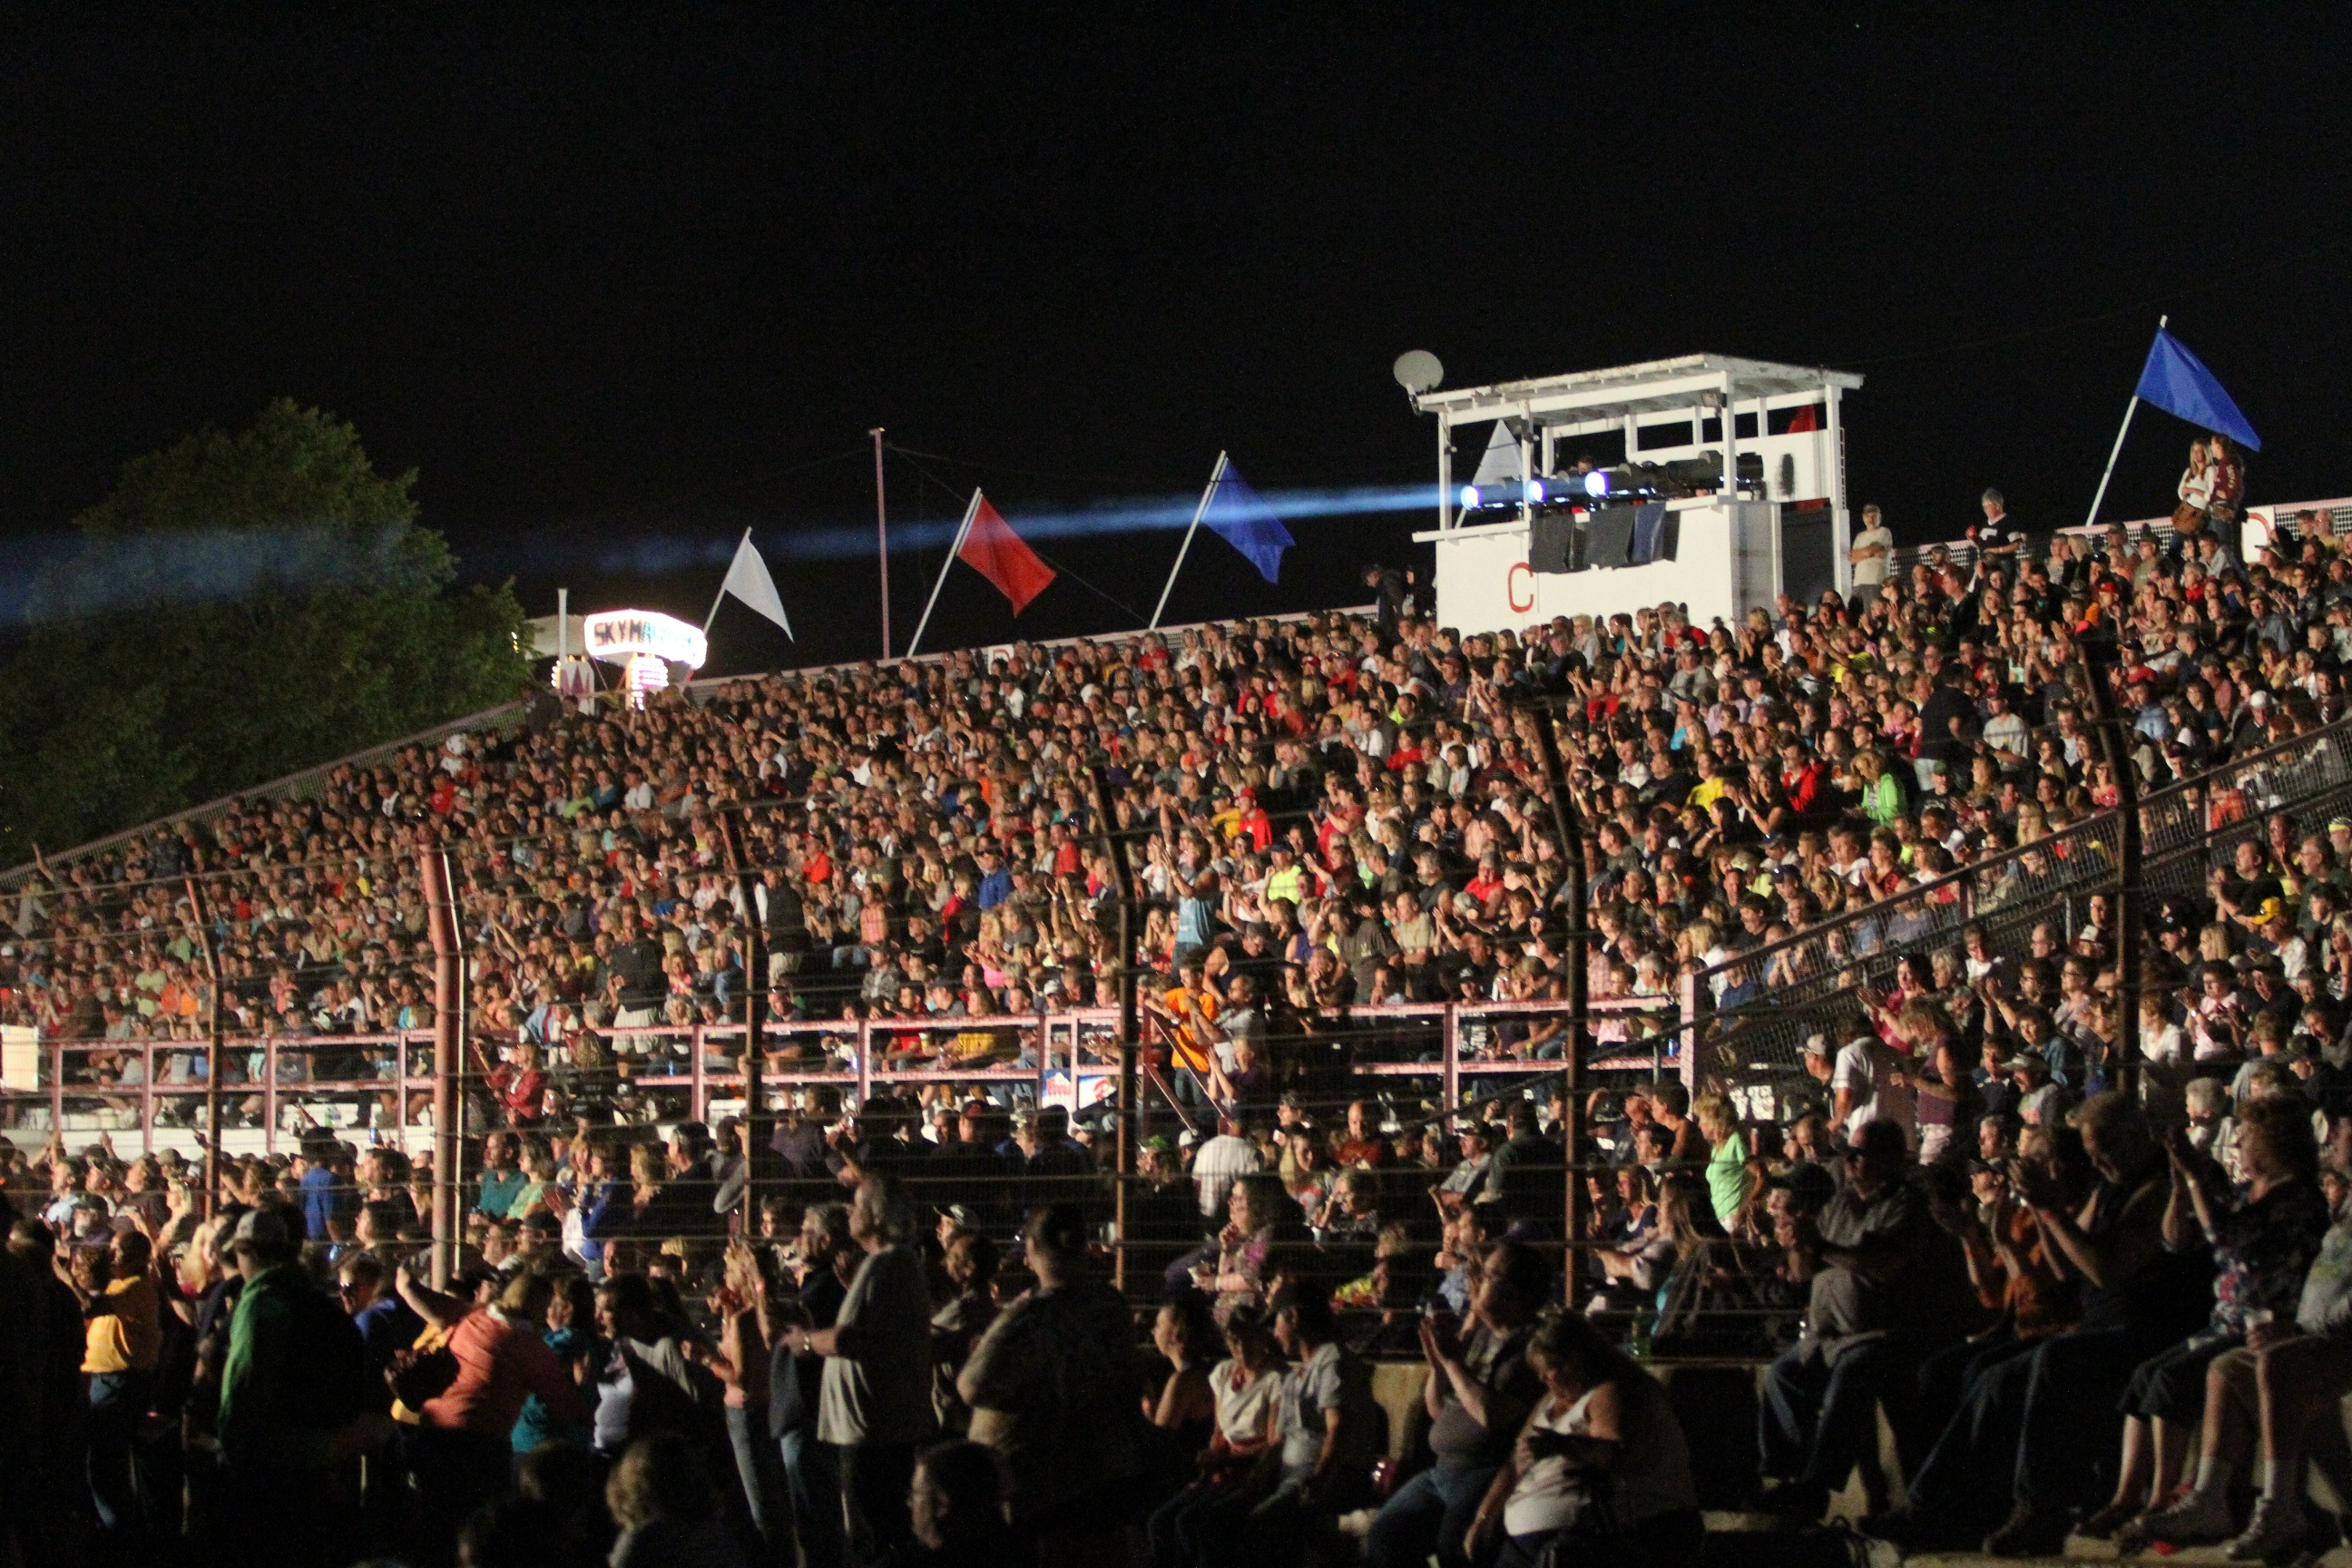 Dodge County Fair Full Grandstand Crowd